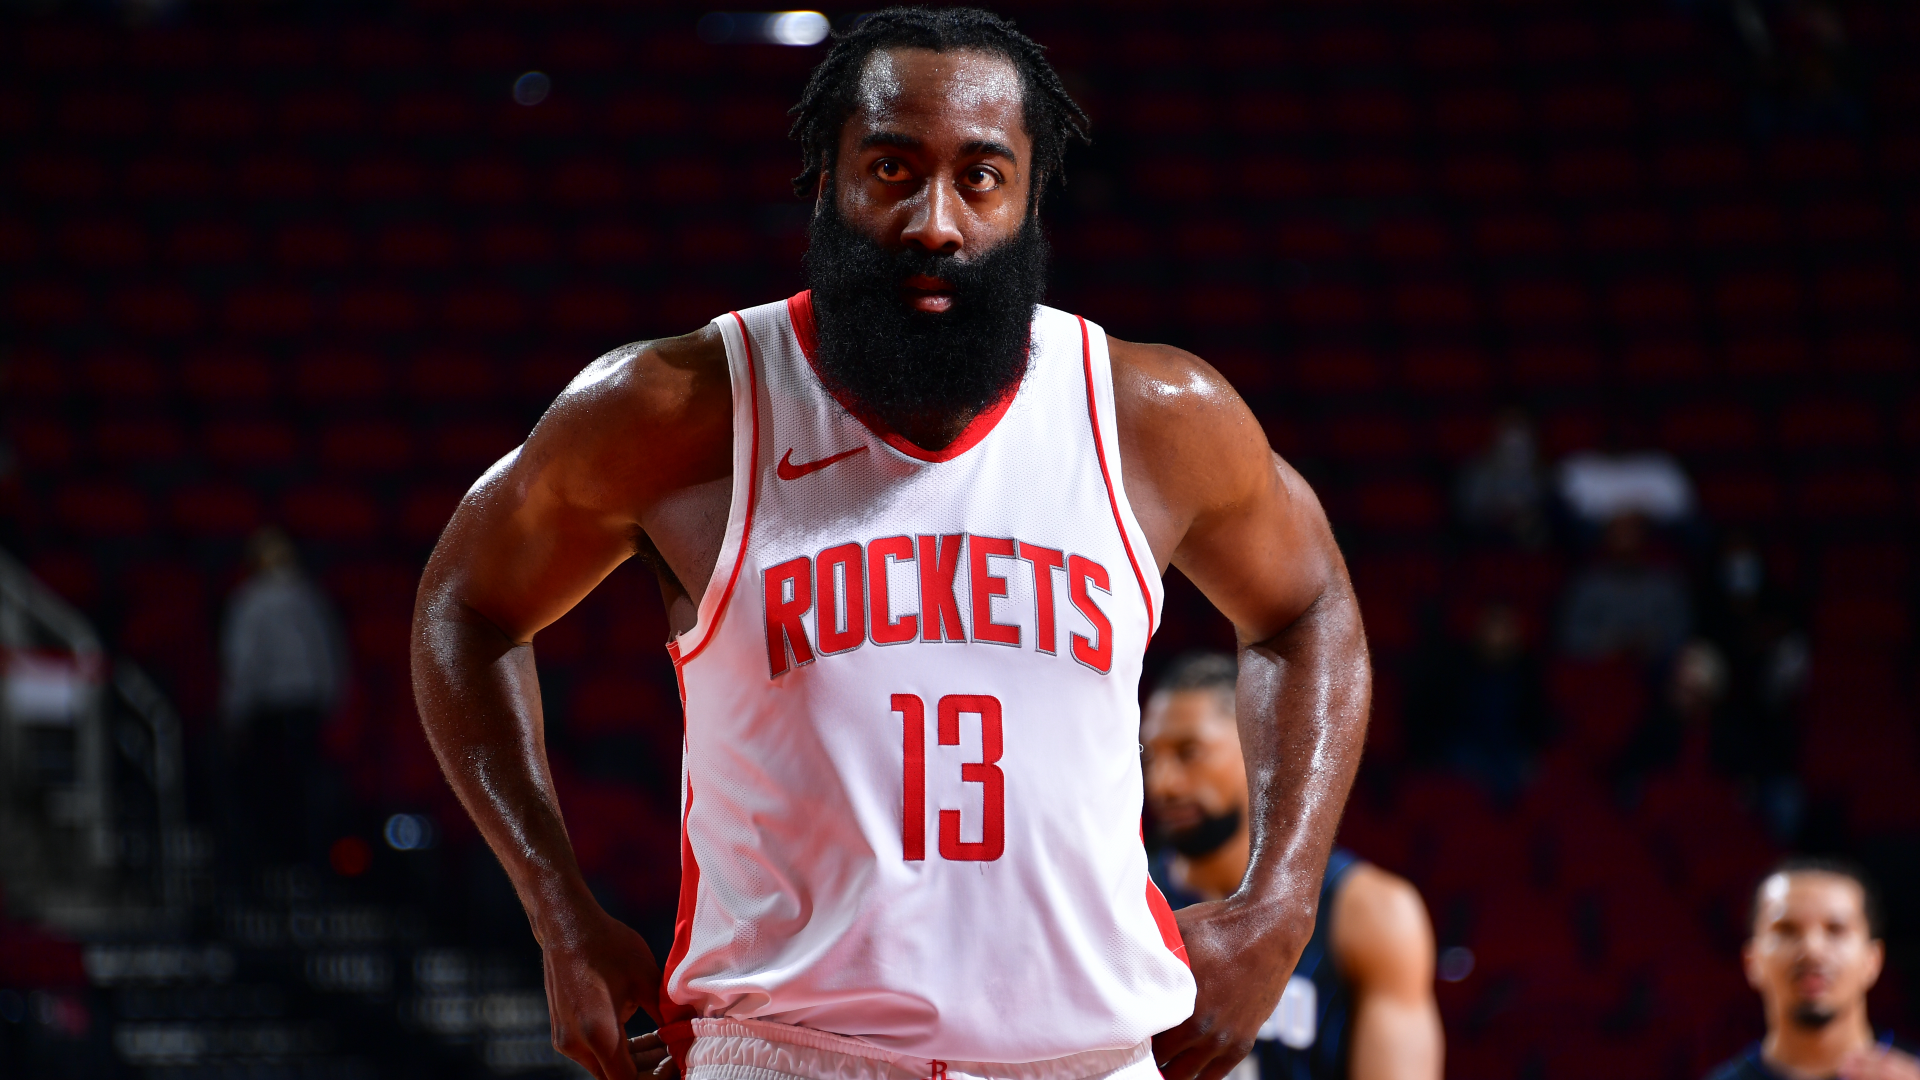 Harden to Nets: How former NBA MVP fits alongside Durant and Irving in Stats Perform data